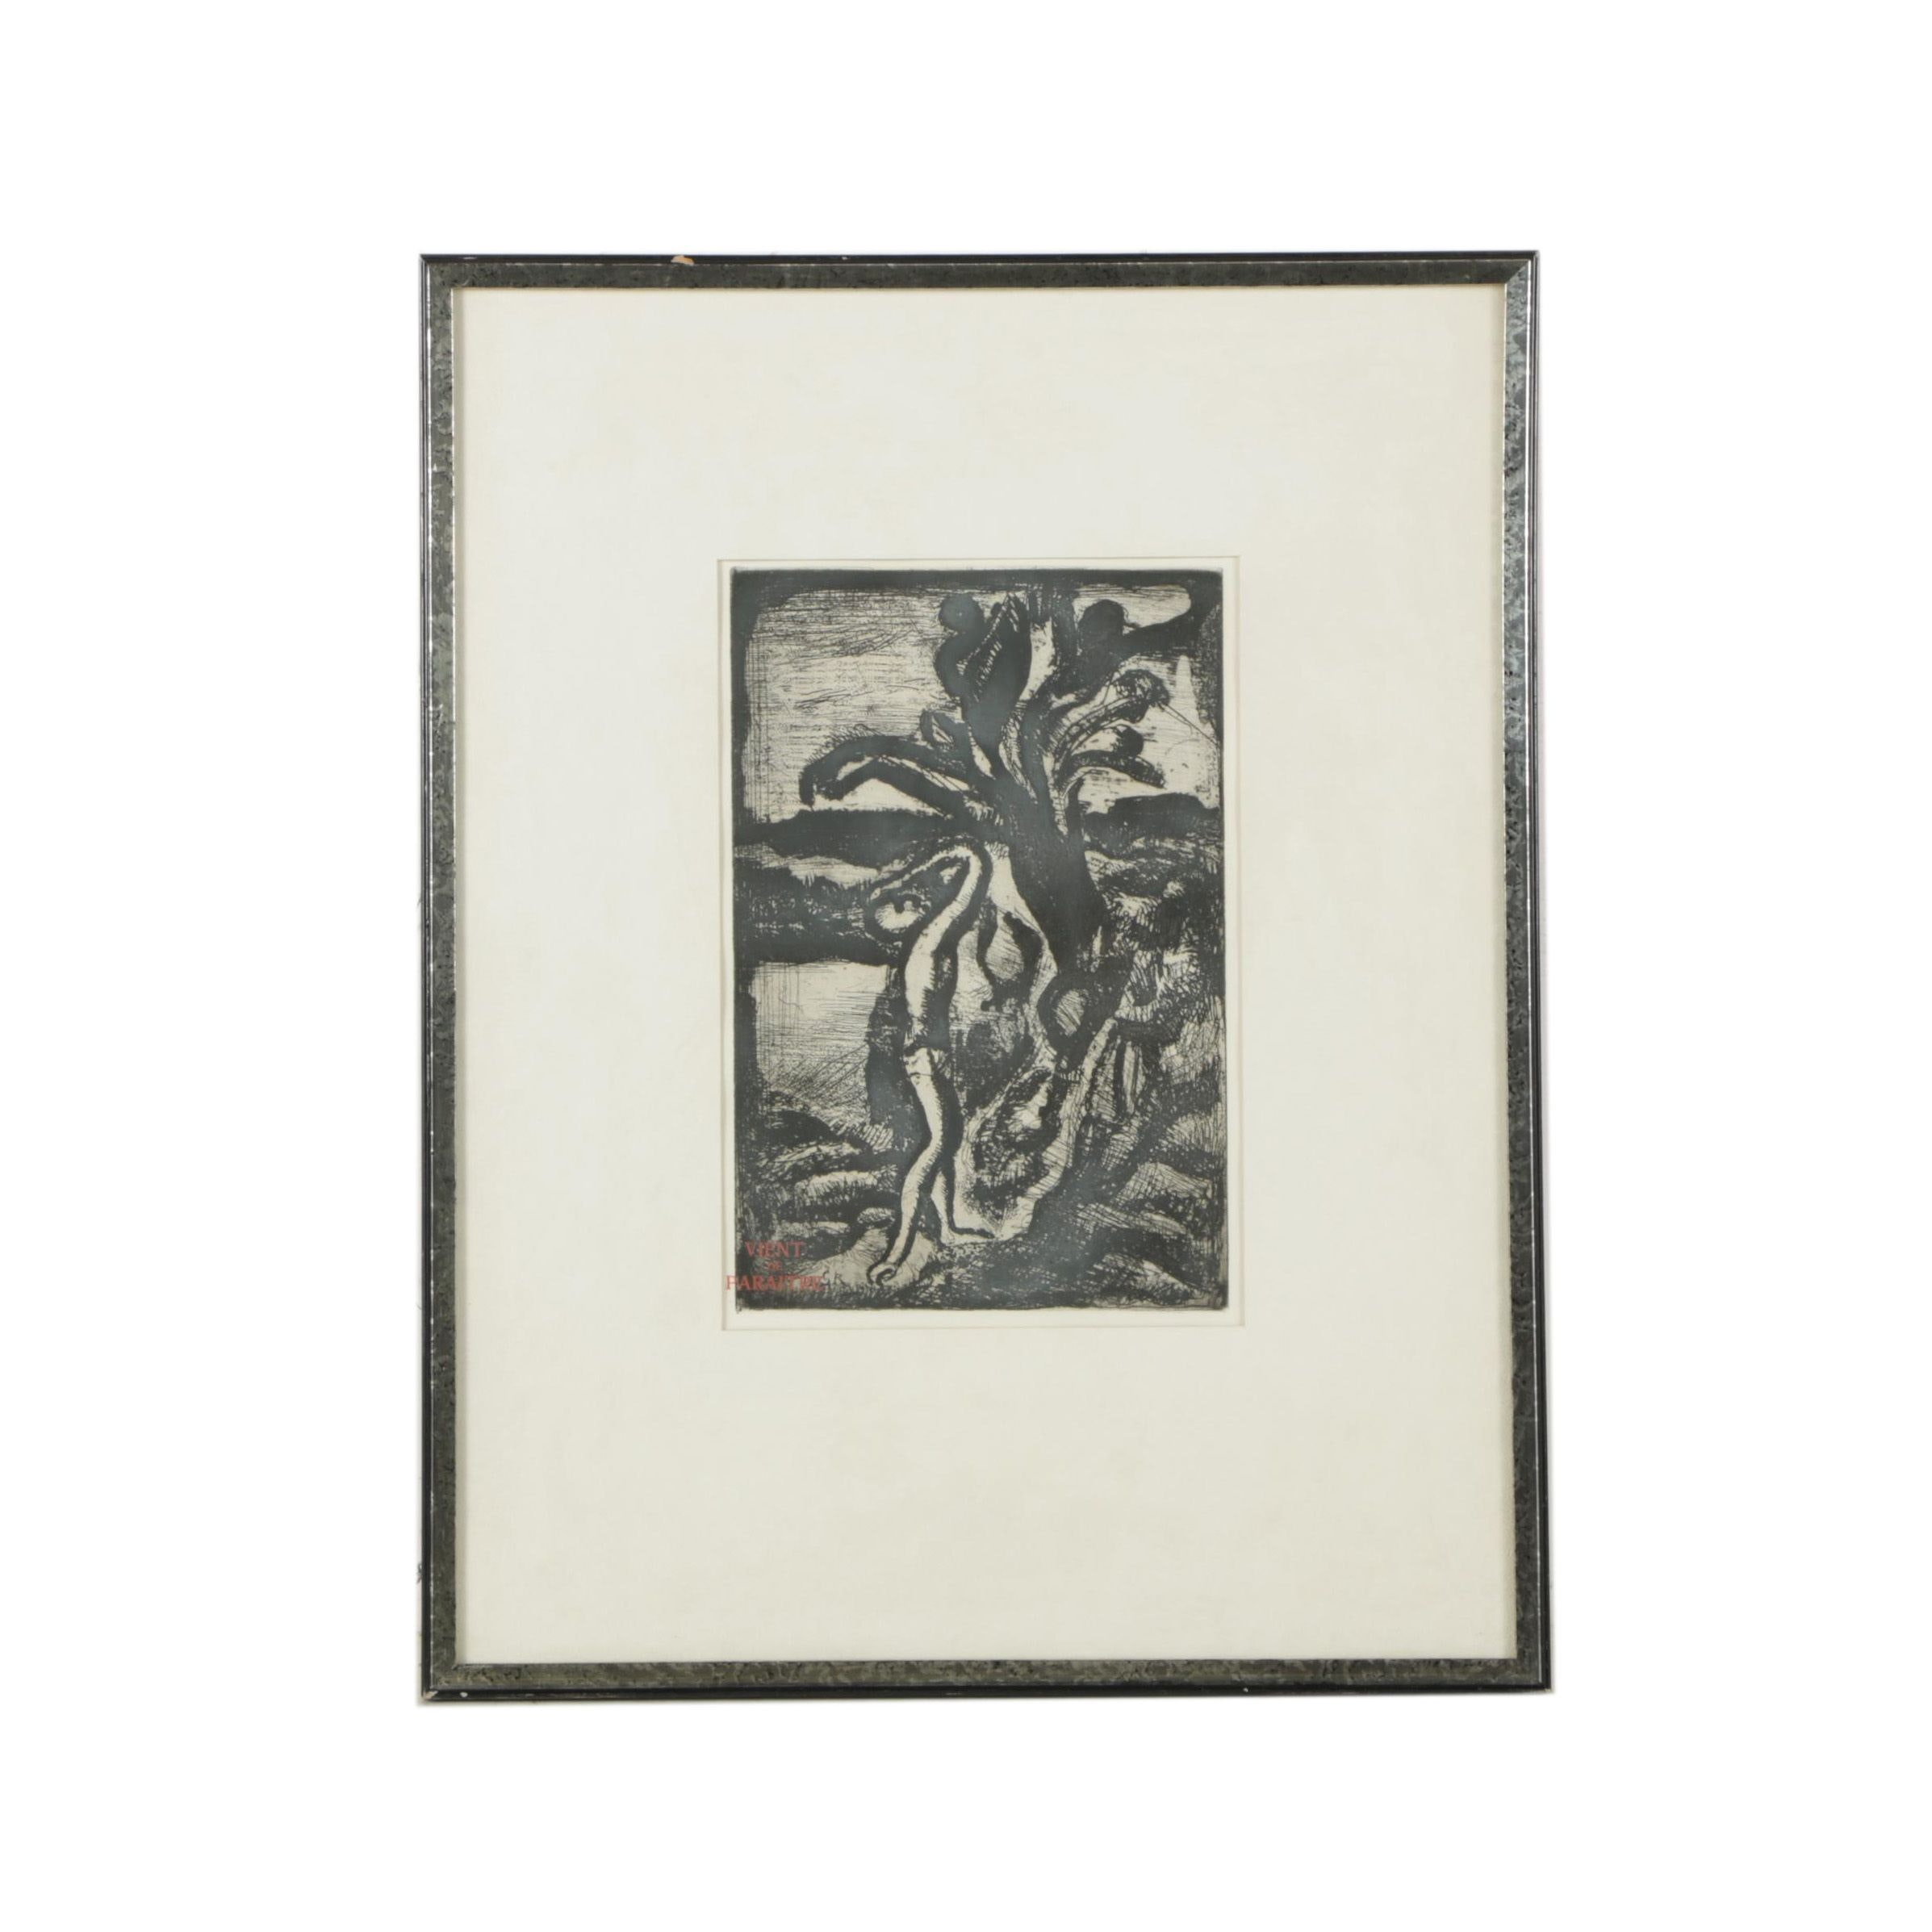 "Etching After Georges Rouault ""Frontispiece: Reincarnations du Pere Ubu (No.I)"""